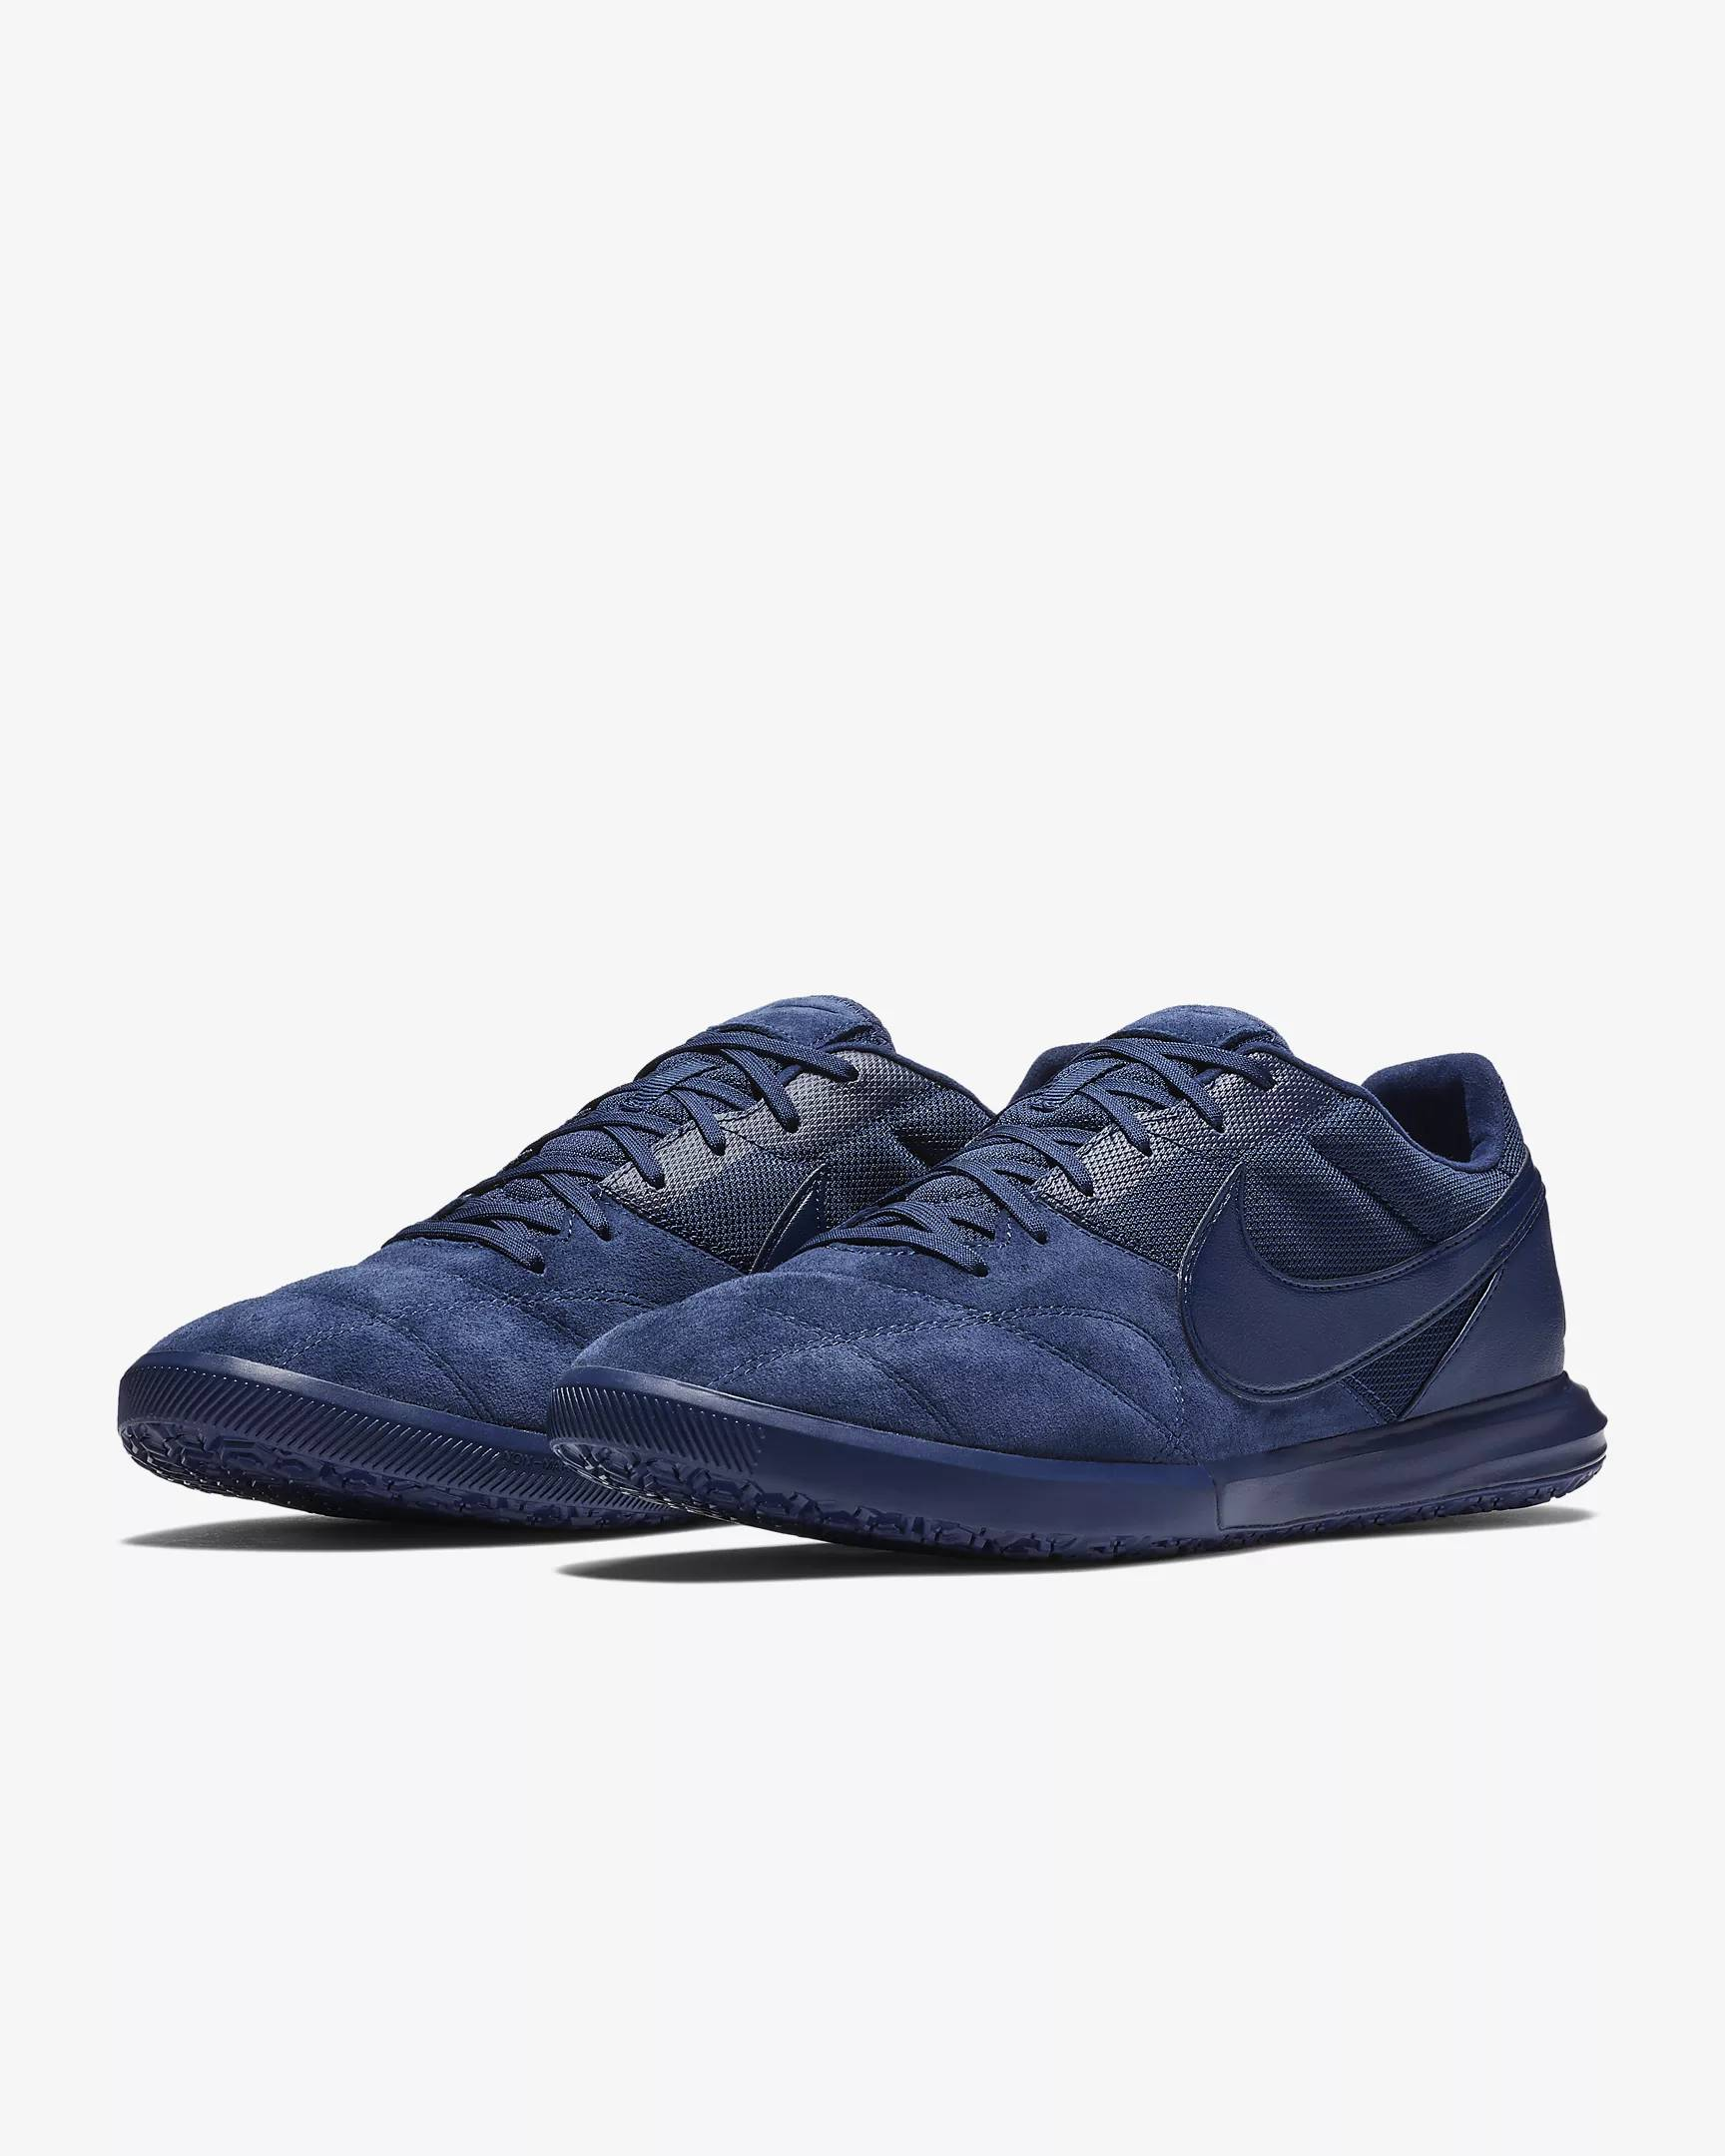 96d05d4c9cc Click to enlarge image  nike tiempo premier ii sala ic midnight navy white midnight navy a.jpg ...